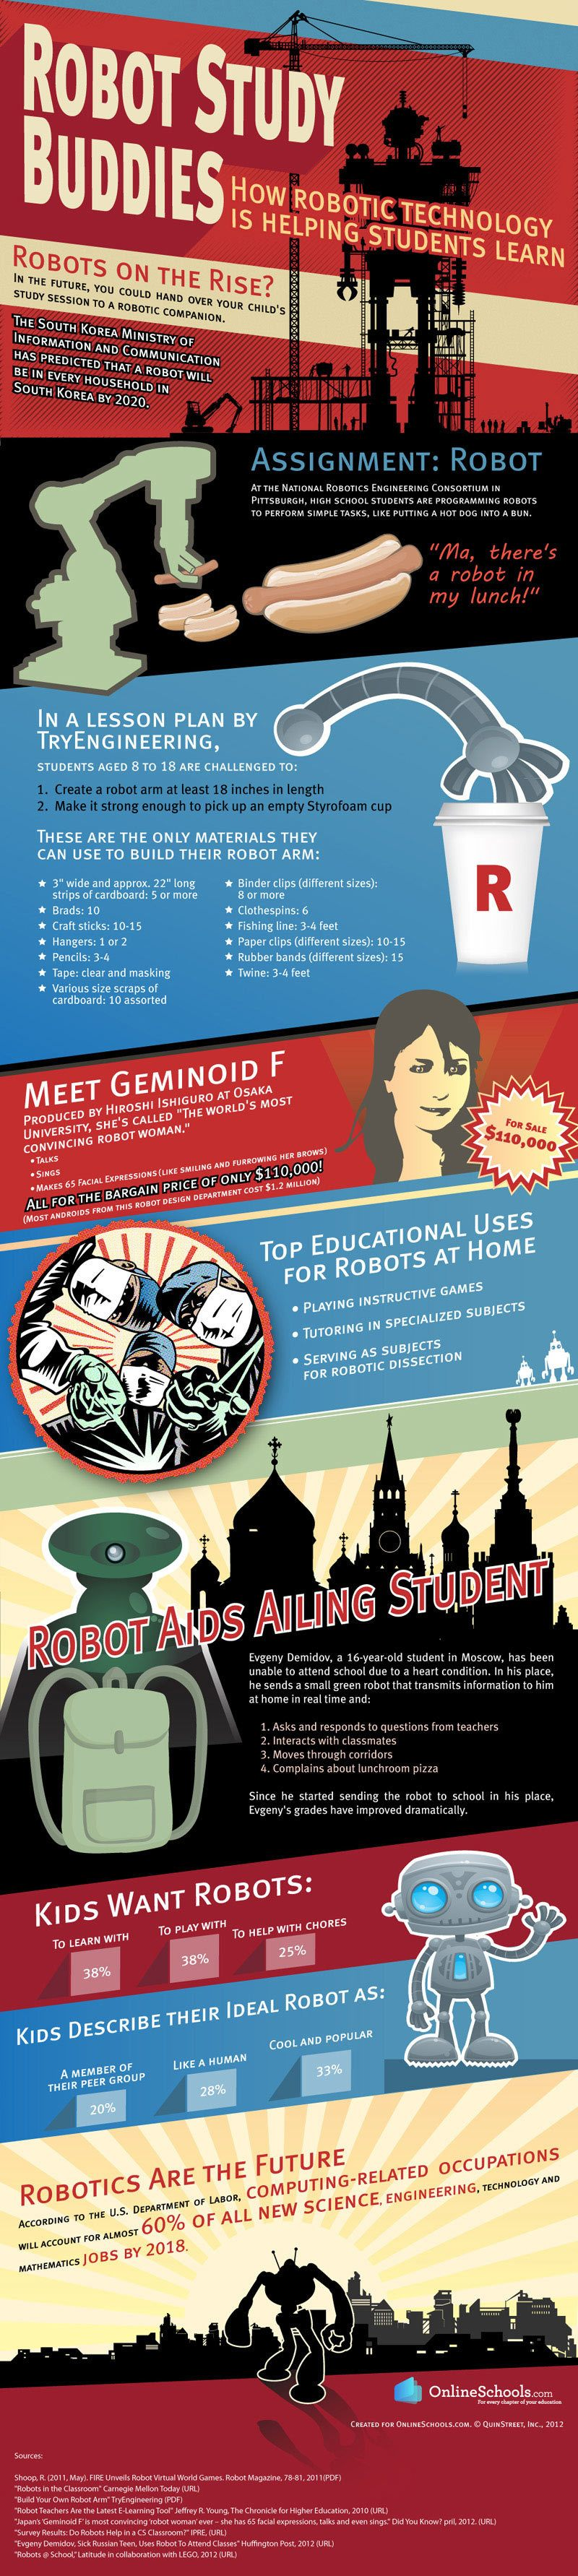 How Robotic Technology is Helping Students Learn Infographic